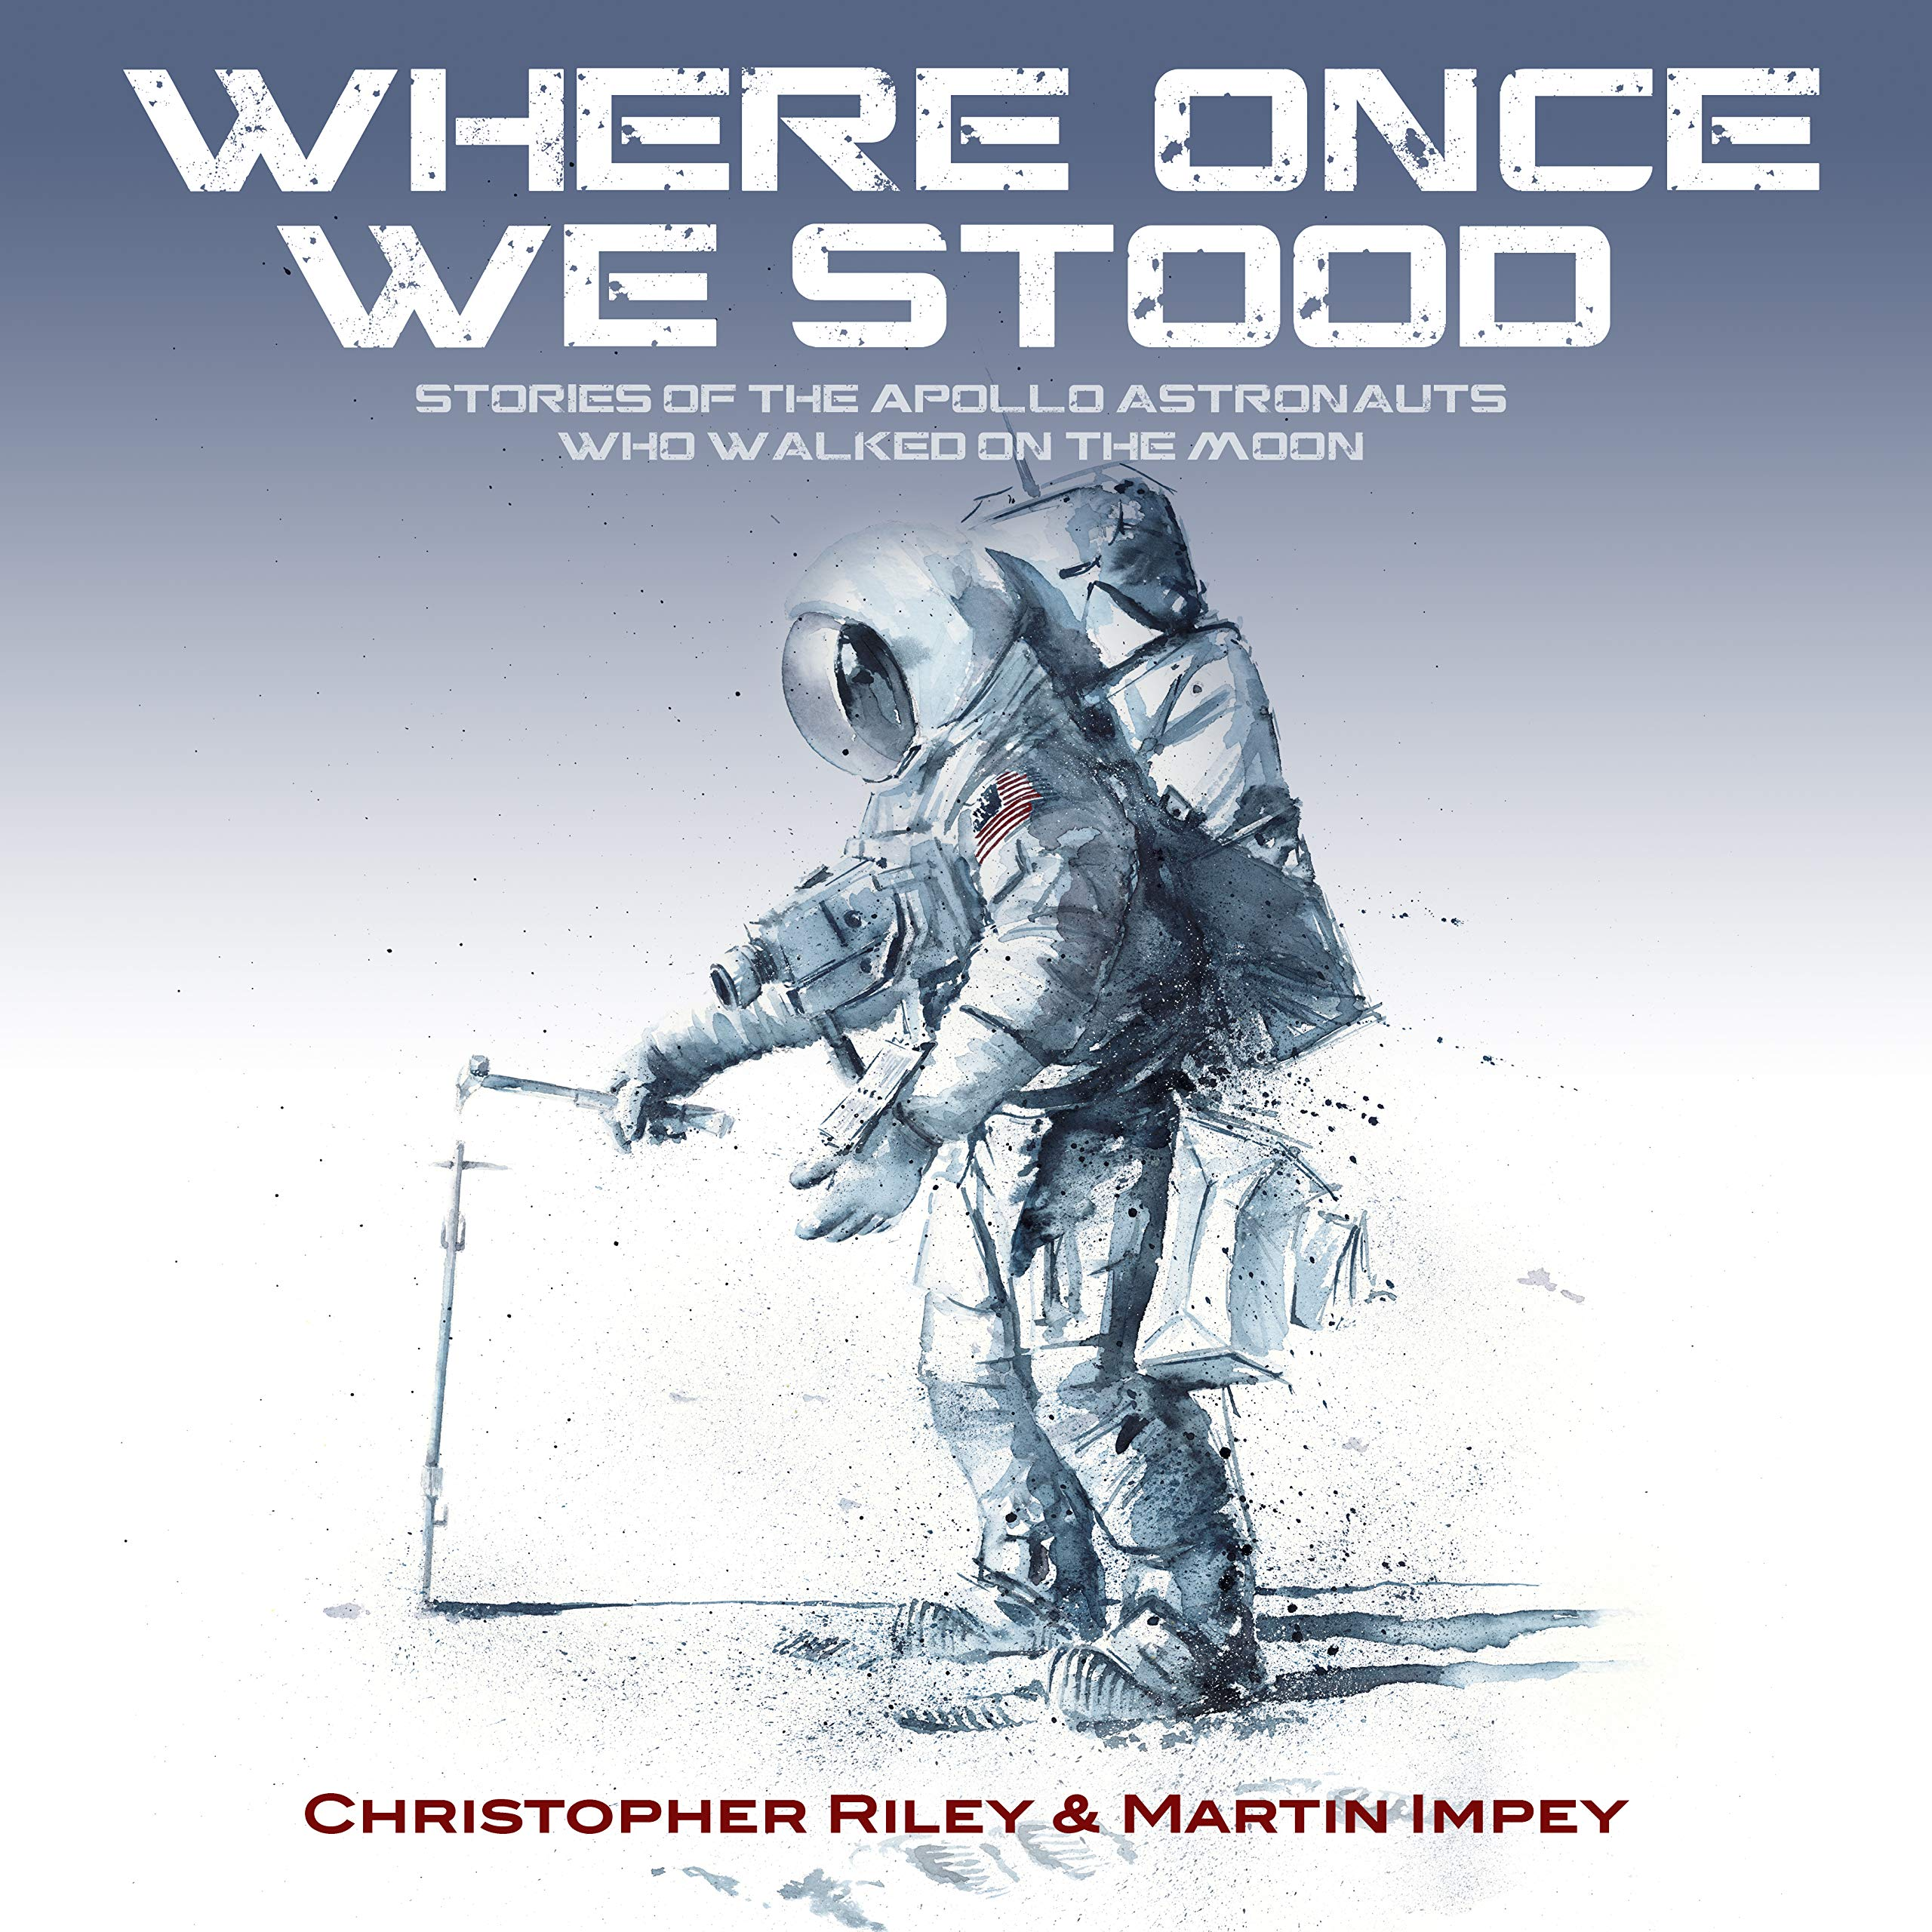 WHERE ONCE WE STOOD: STORIES OF THE APOLLO ASTRONAUTS WHO WALKED ON THE  MOON: Amazon.co.uk: RILEY, CHRISTOPHER, IMPEY, MARTIN: 9781916062504: Books